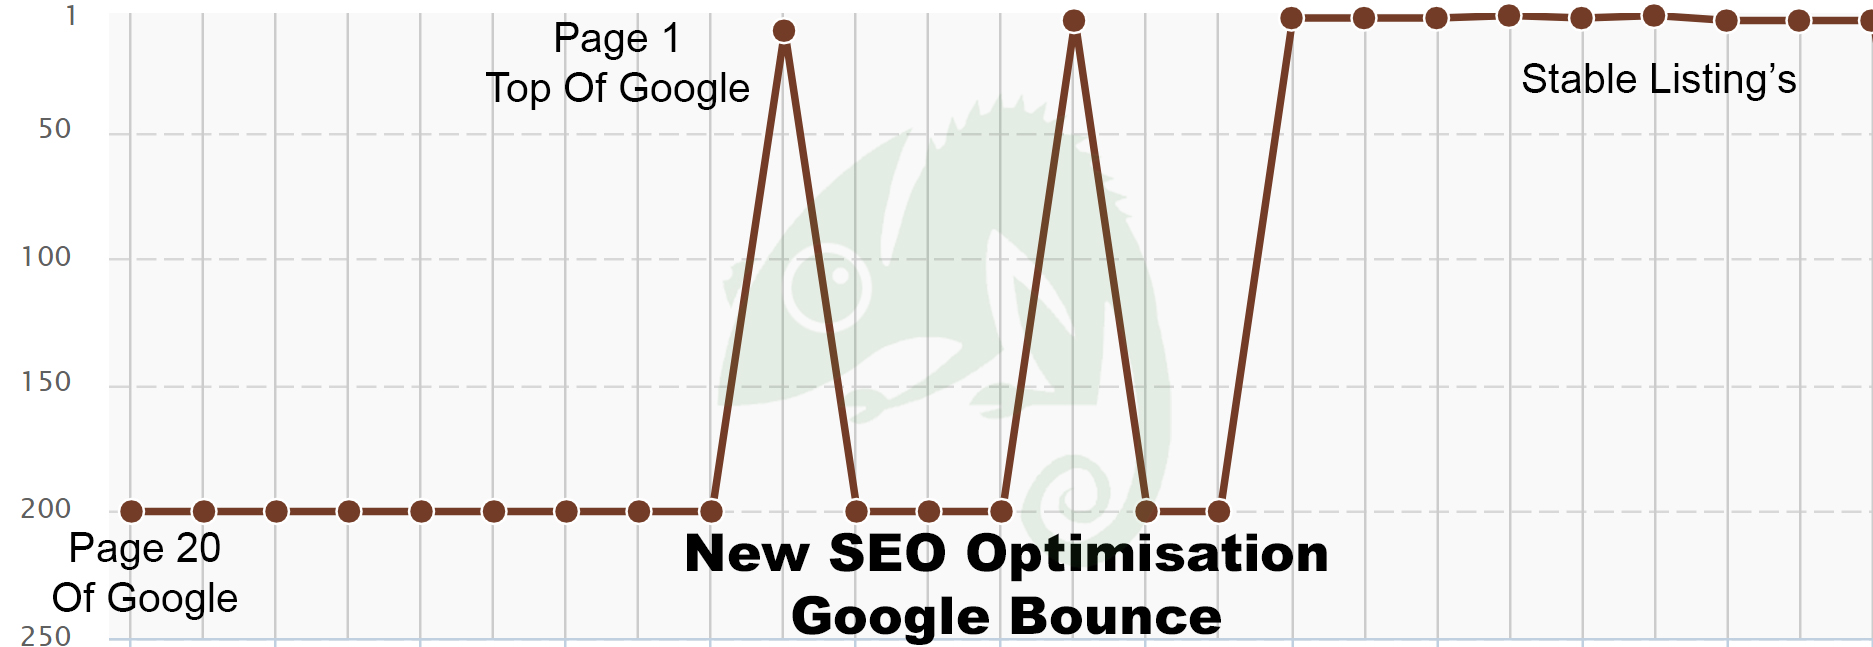 SEO improvements graph